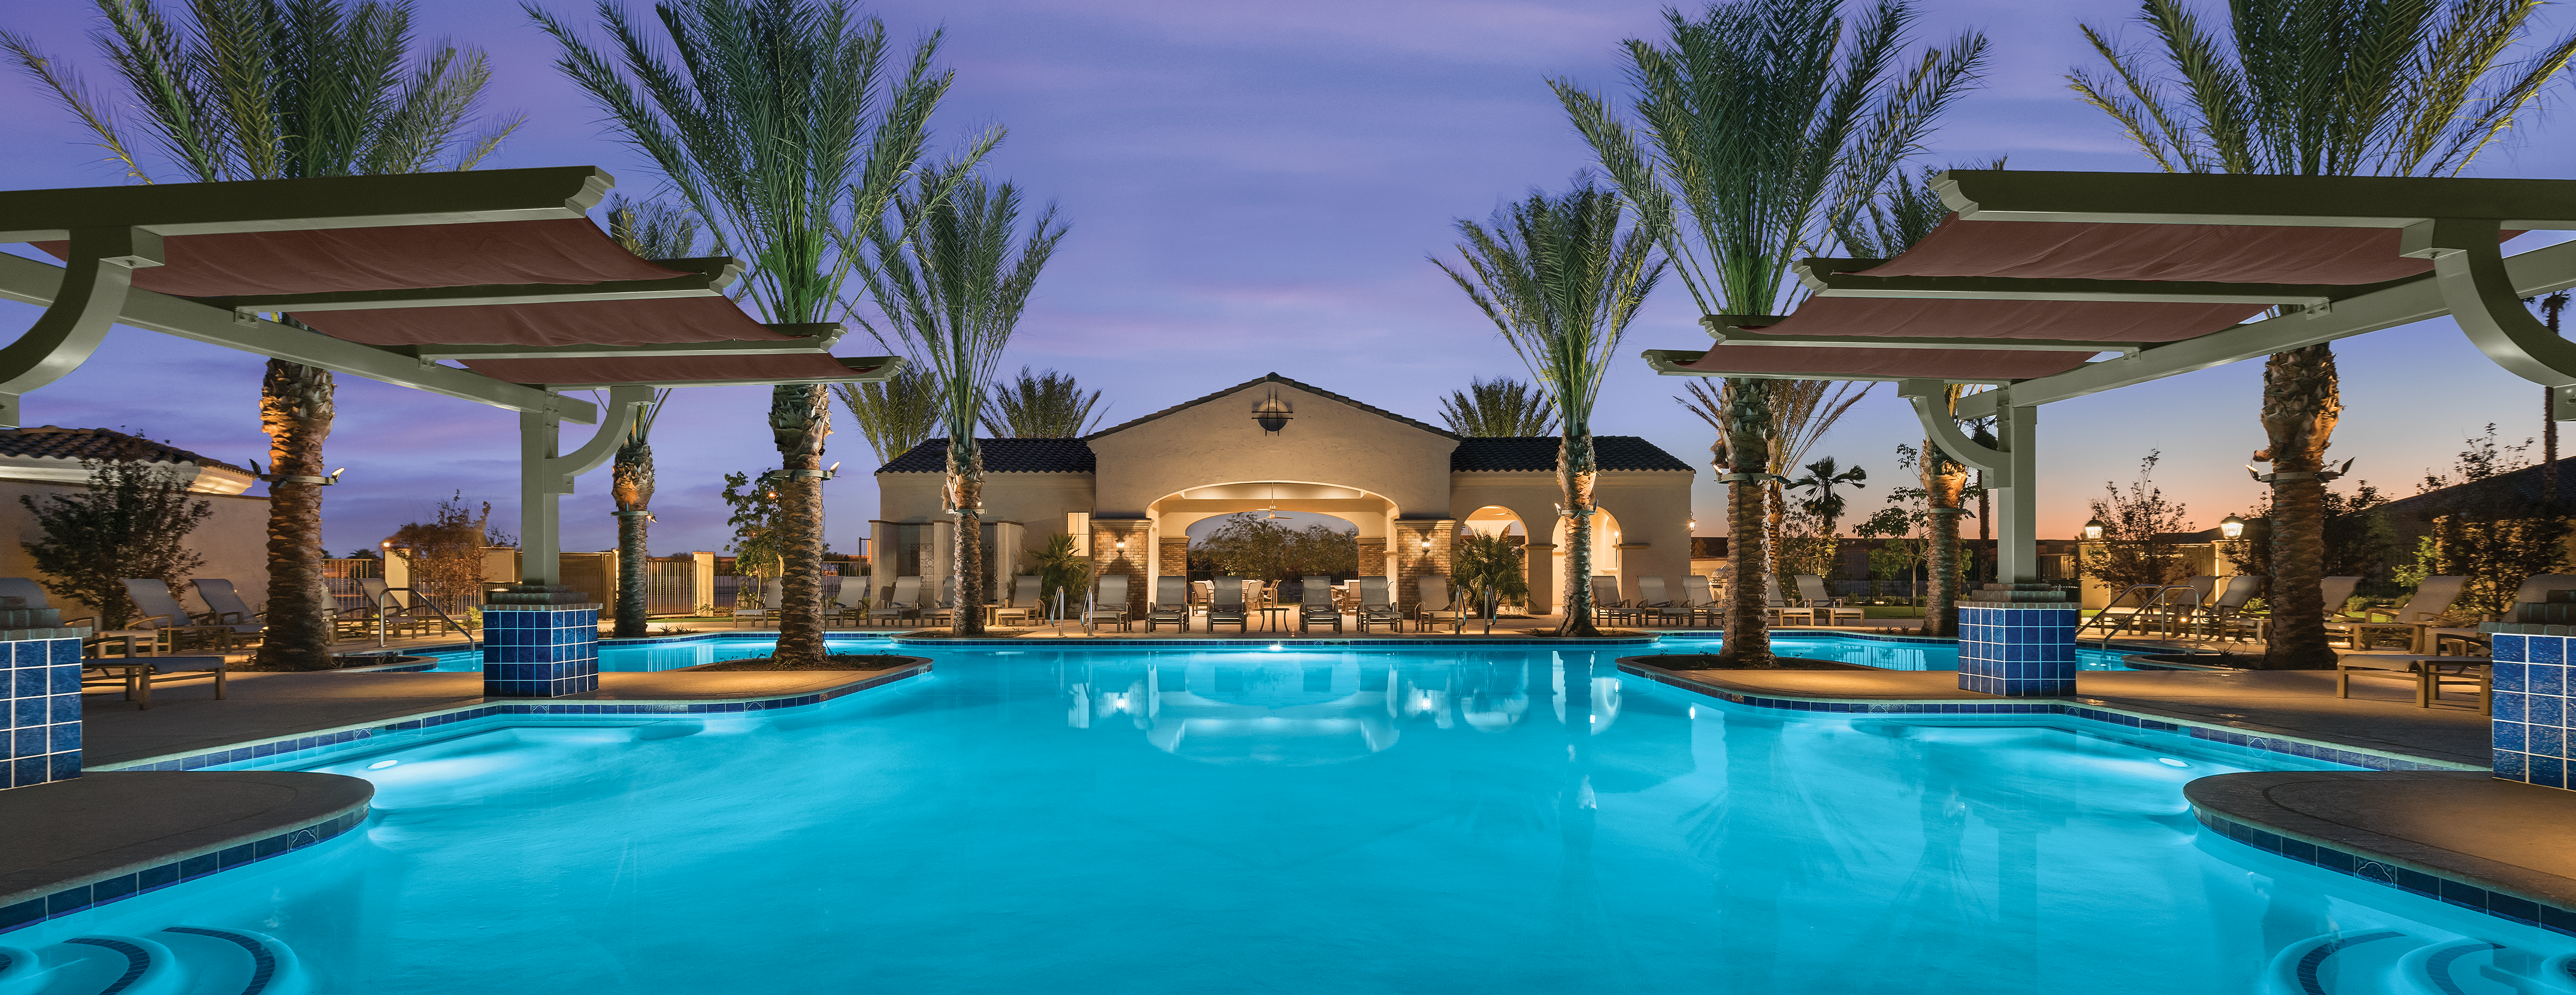 Active adult arizona community gated in